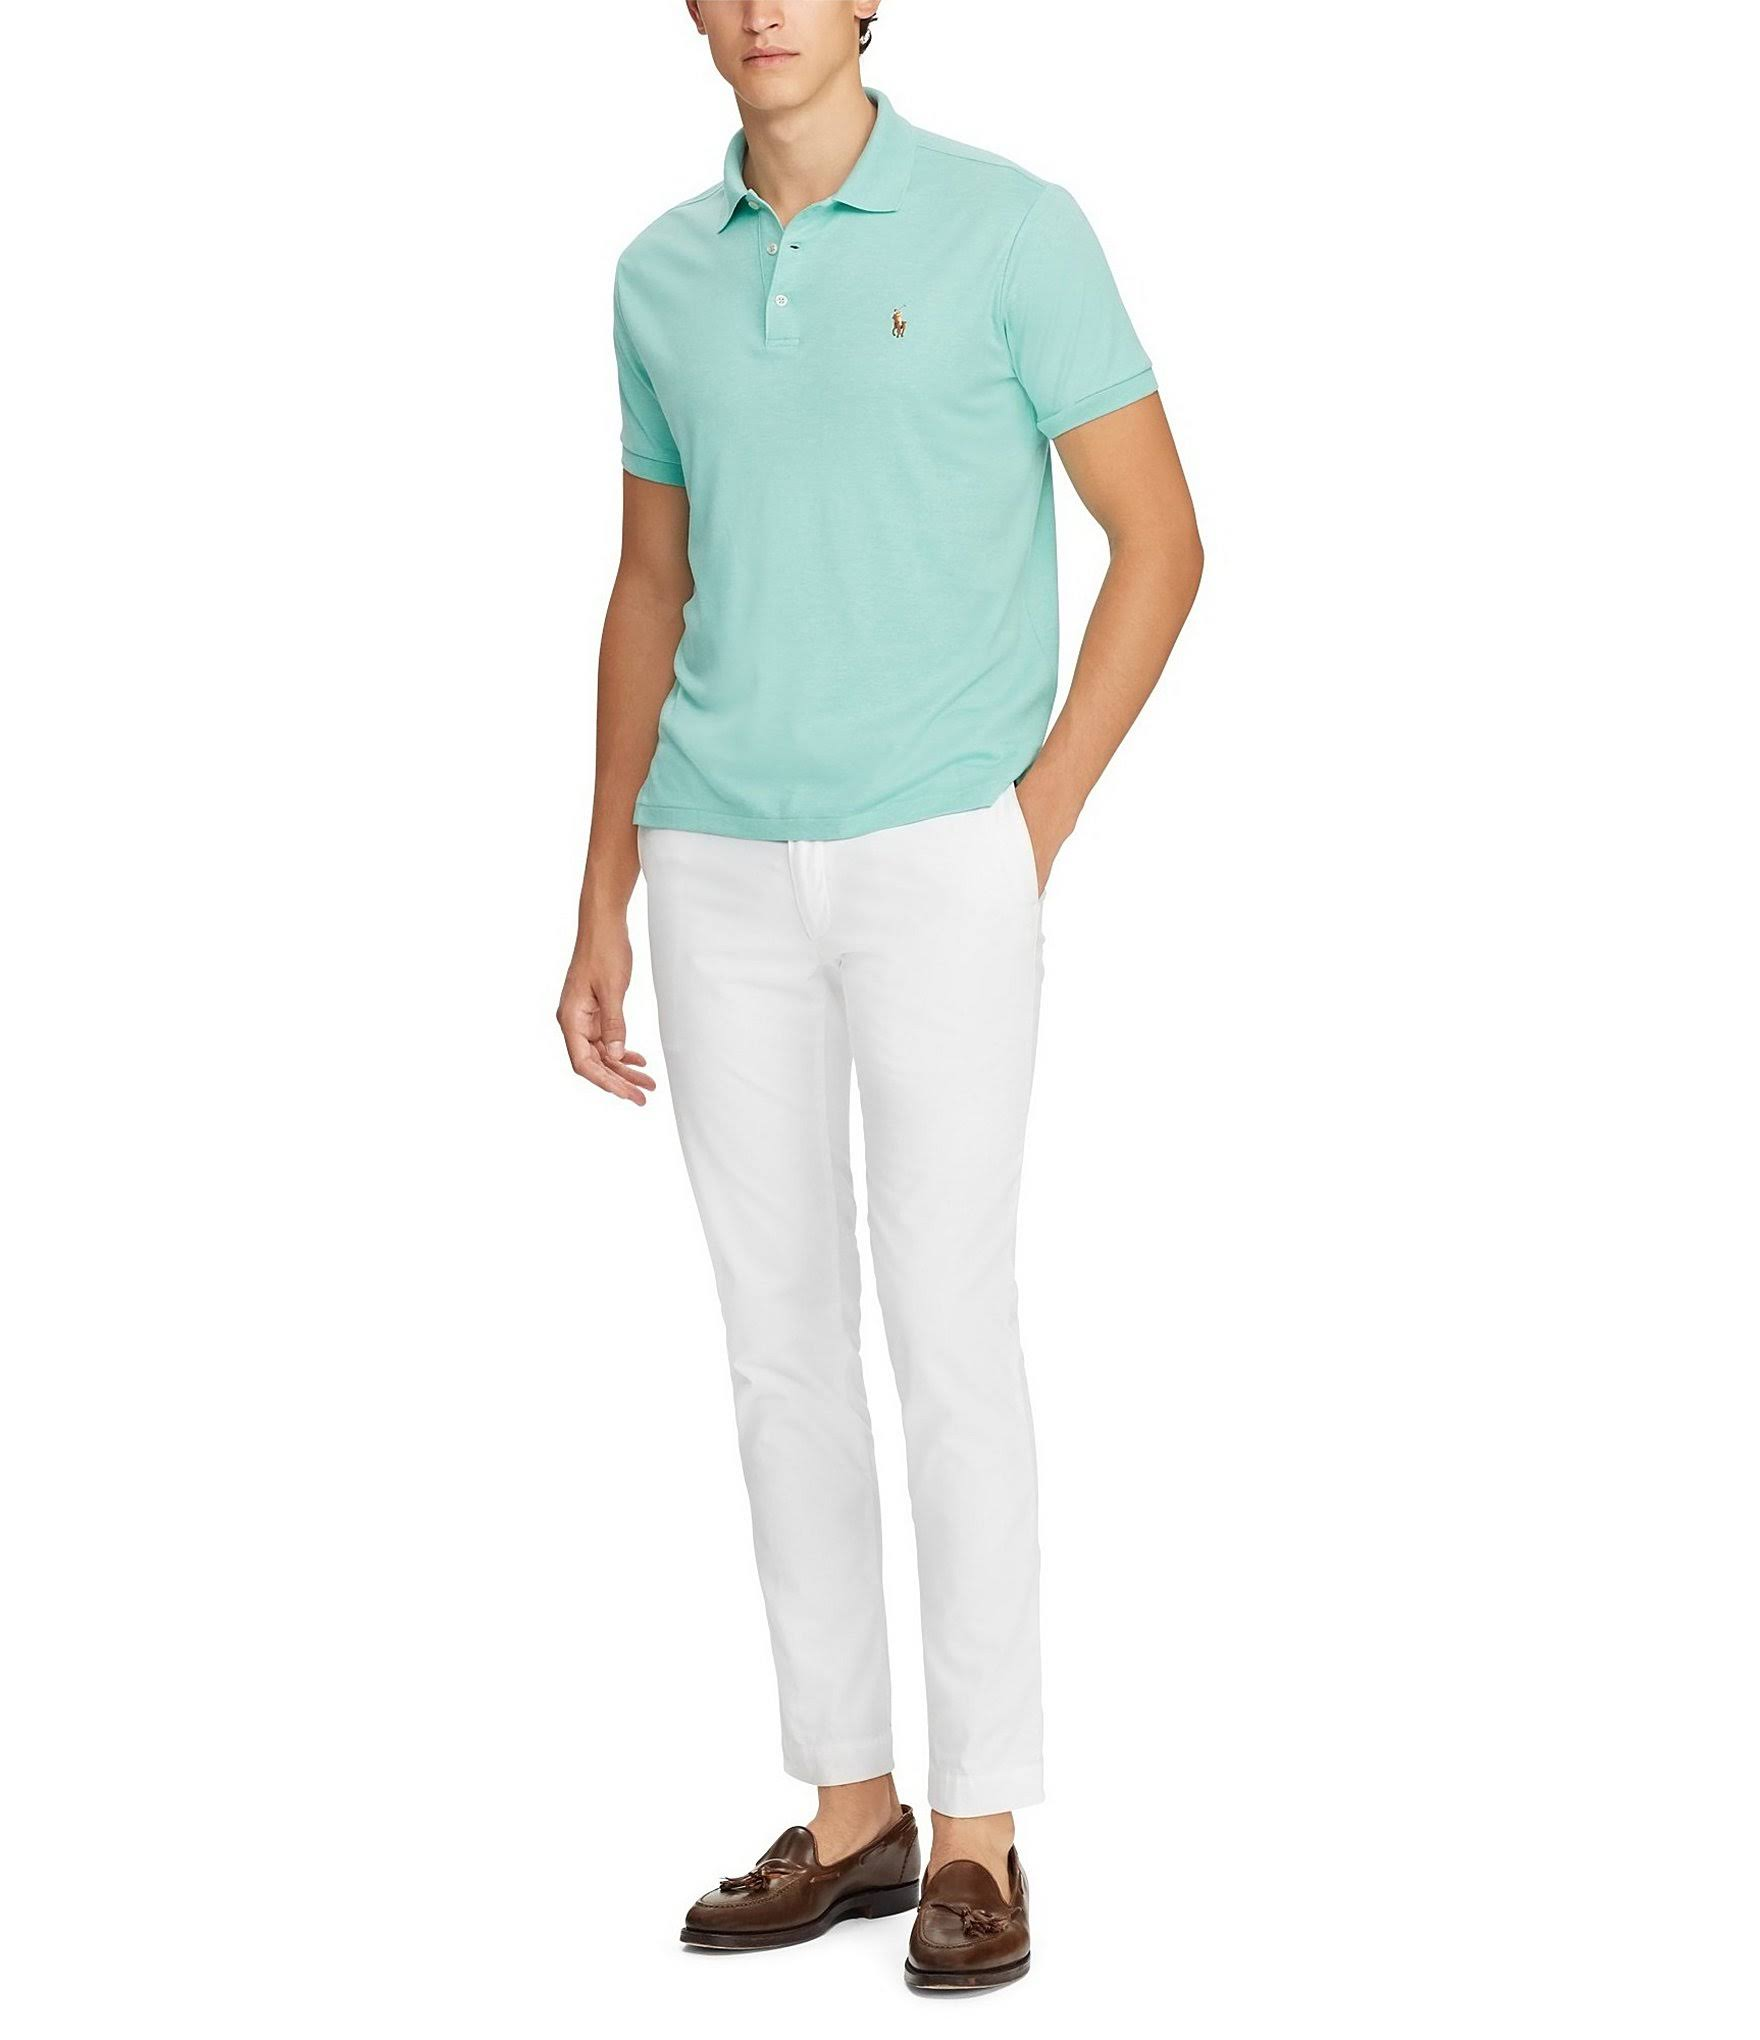 Caribbean Green Lauren Ralph Fit Xl Heather Touch Polo Classic Soft Hombres Para za85dq